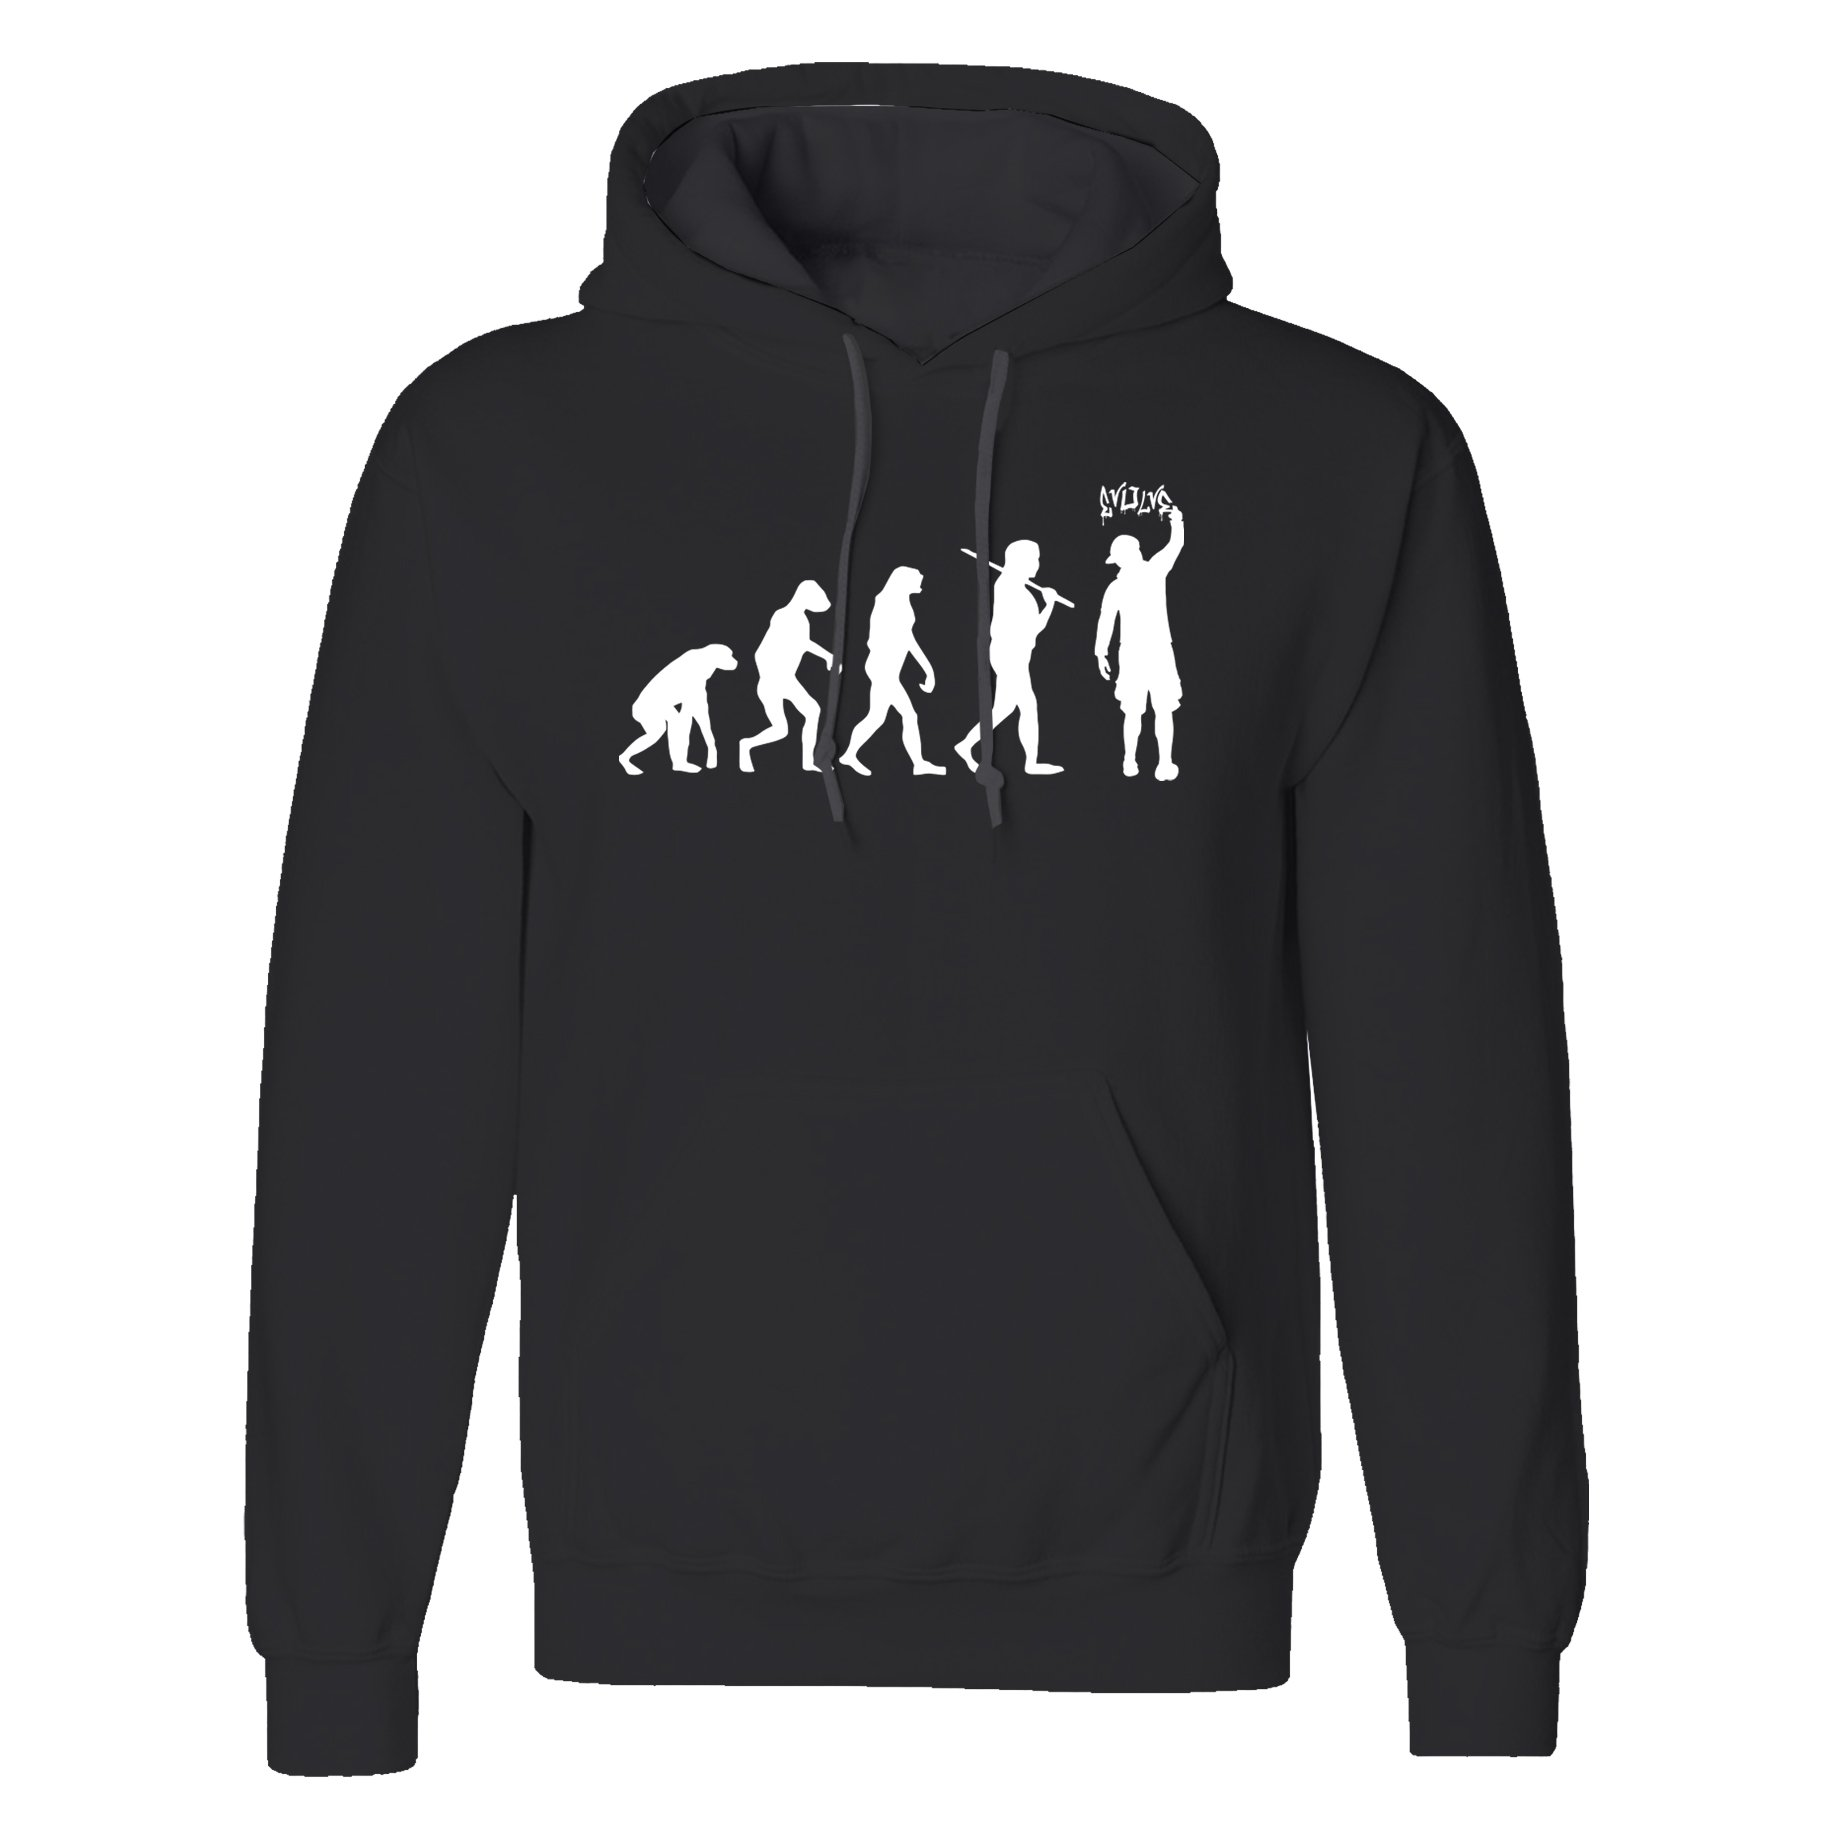 Evolution Graffiti Hood